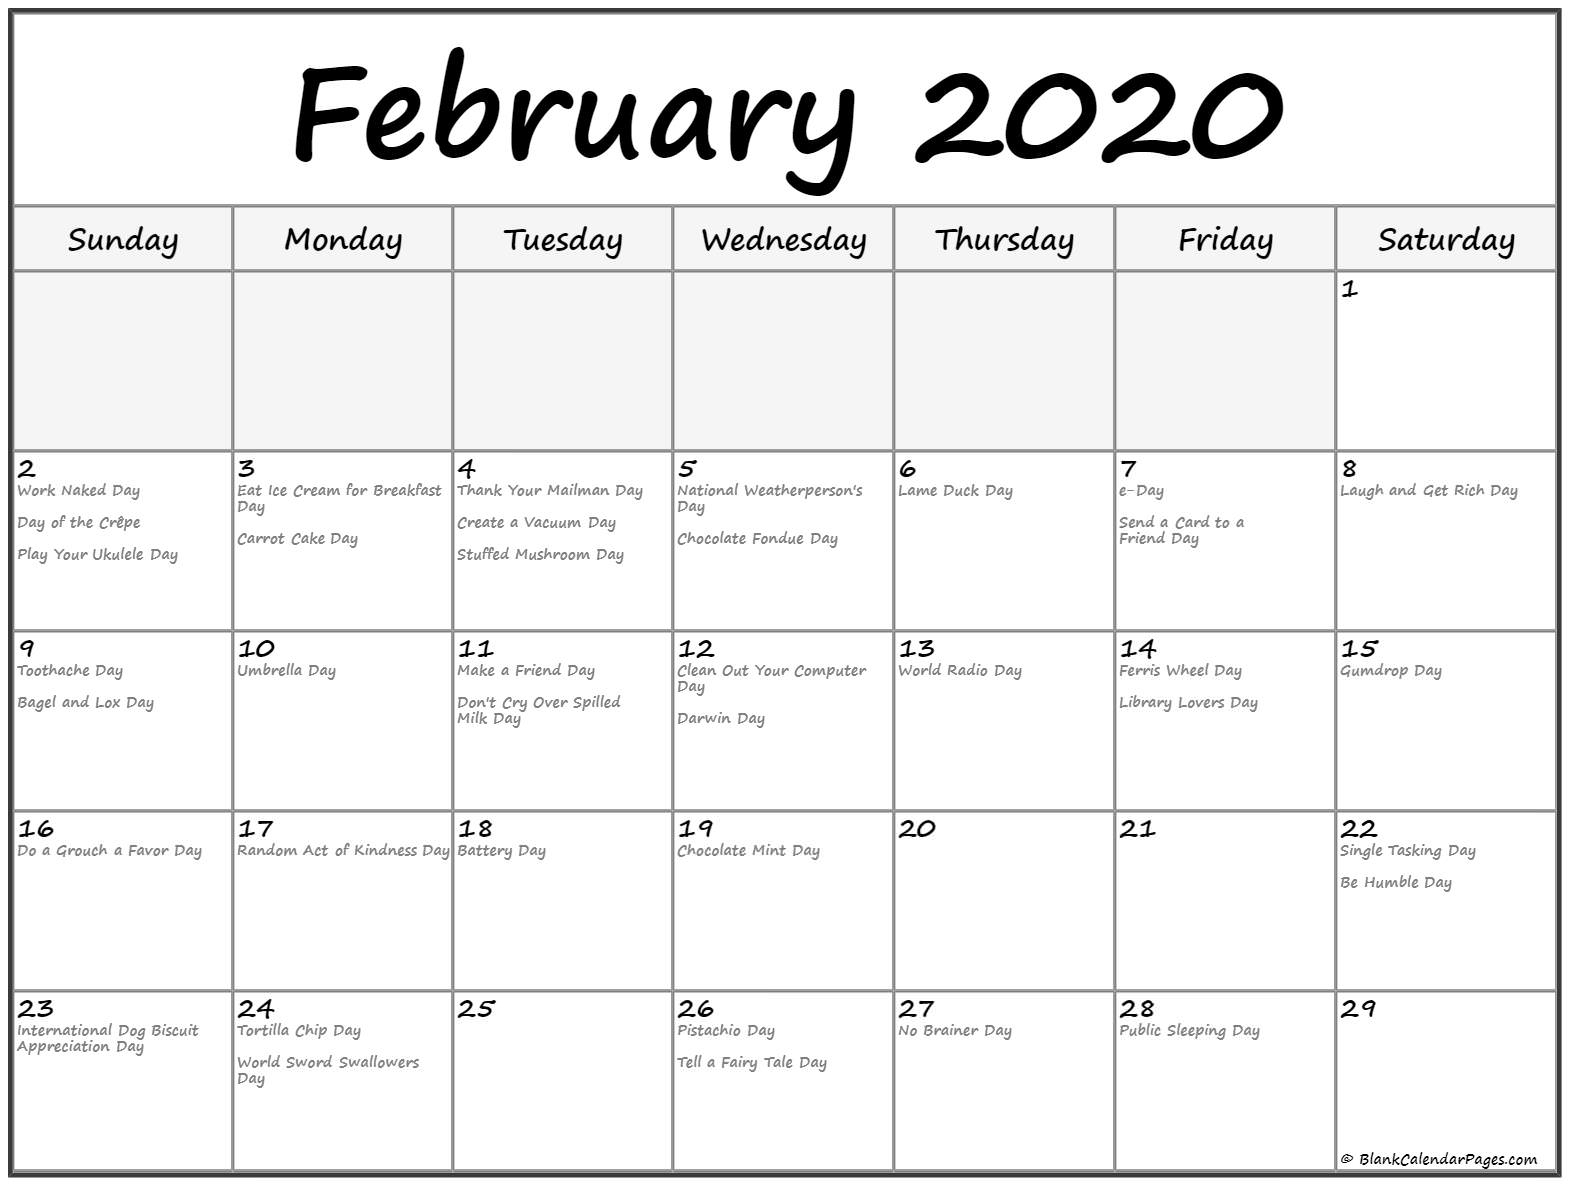 Collection Of February 2020 Calendars With Holidays within National Day Calendar 2020 Printable List